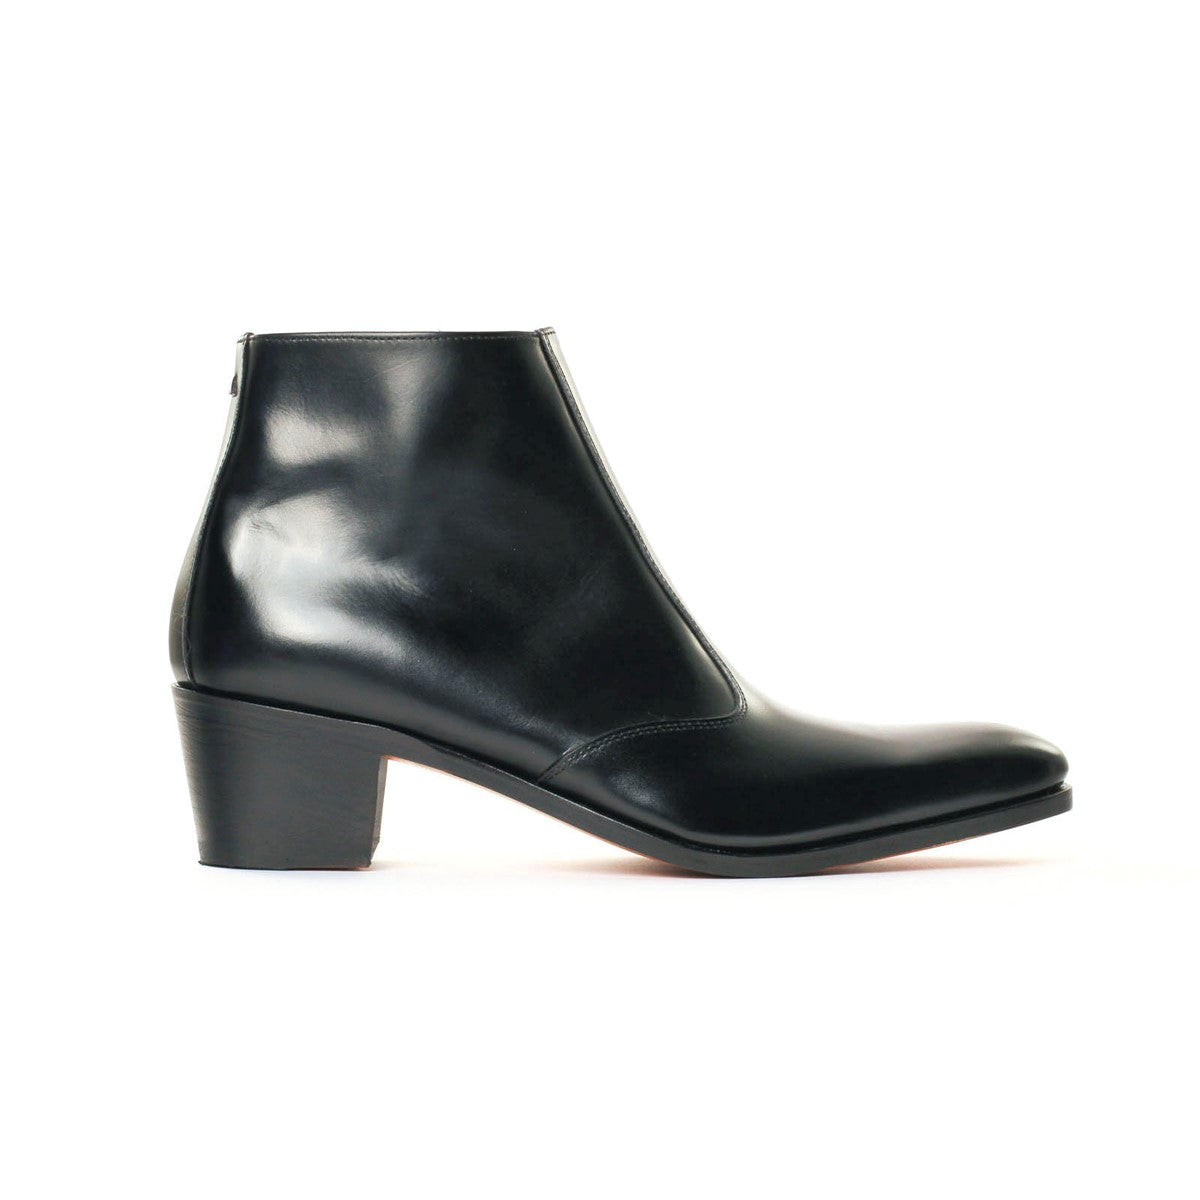 Boots in black calf leather Opéra 5cm